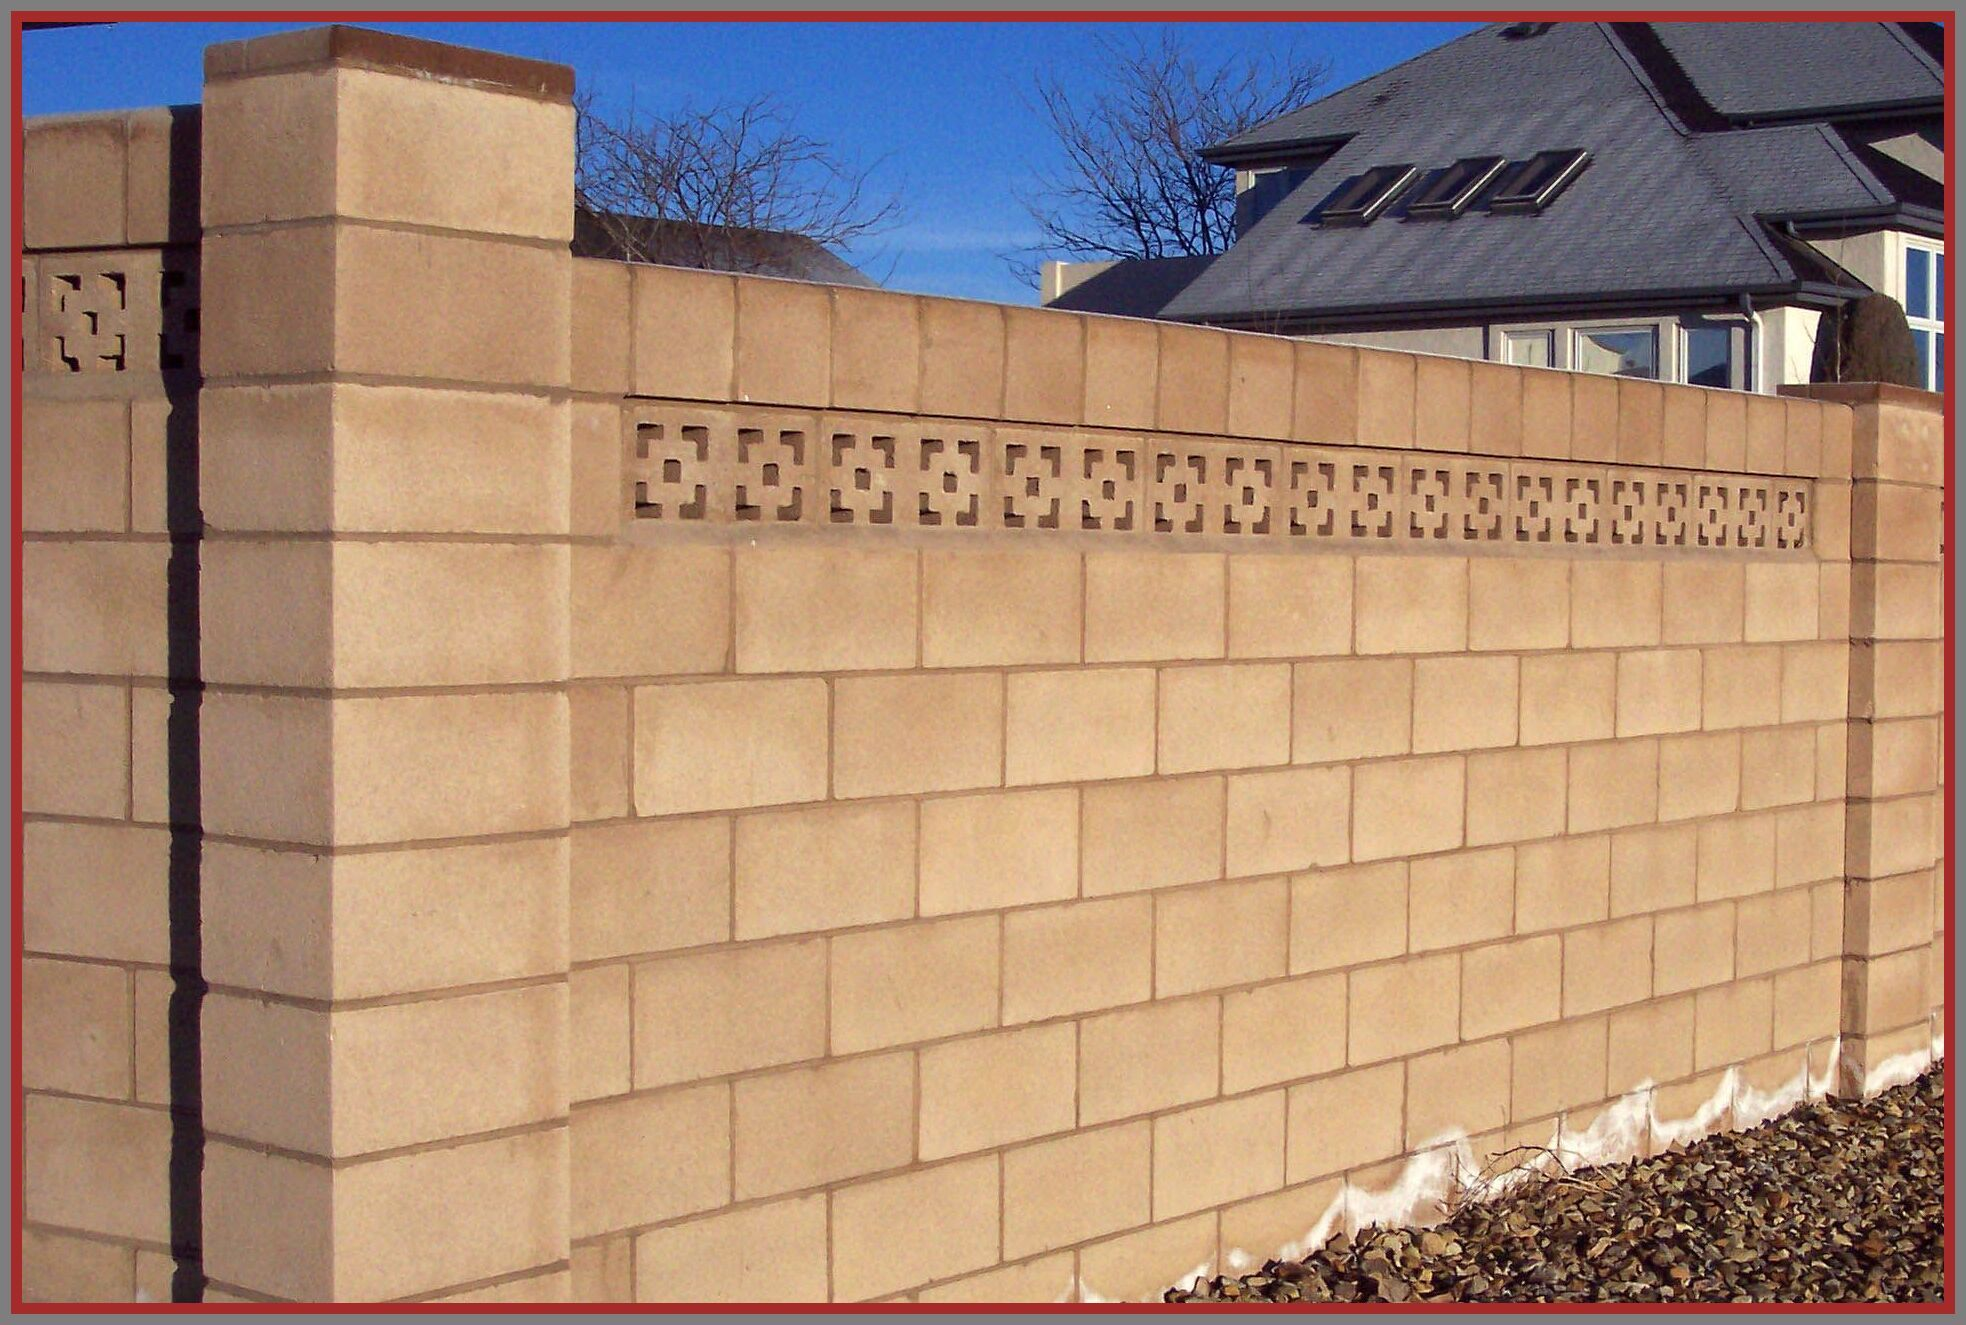 54 Reference Of Exterior Brick Wall Decor In 2020 Concrete Decor Brick Wall Decor Exterior Brick